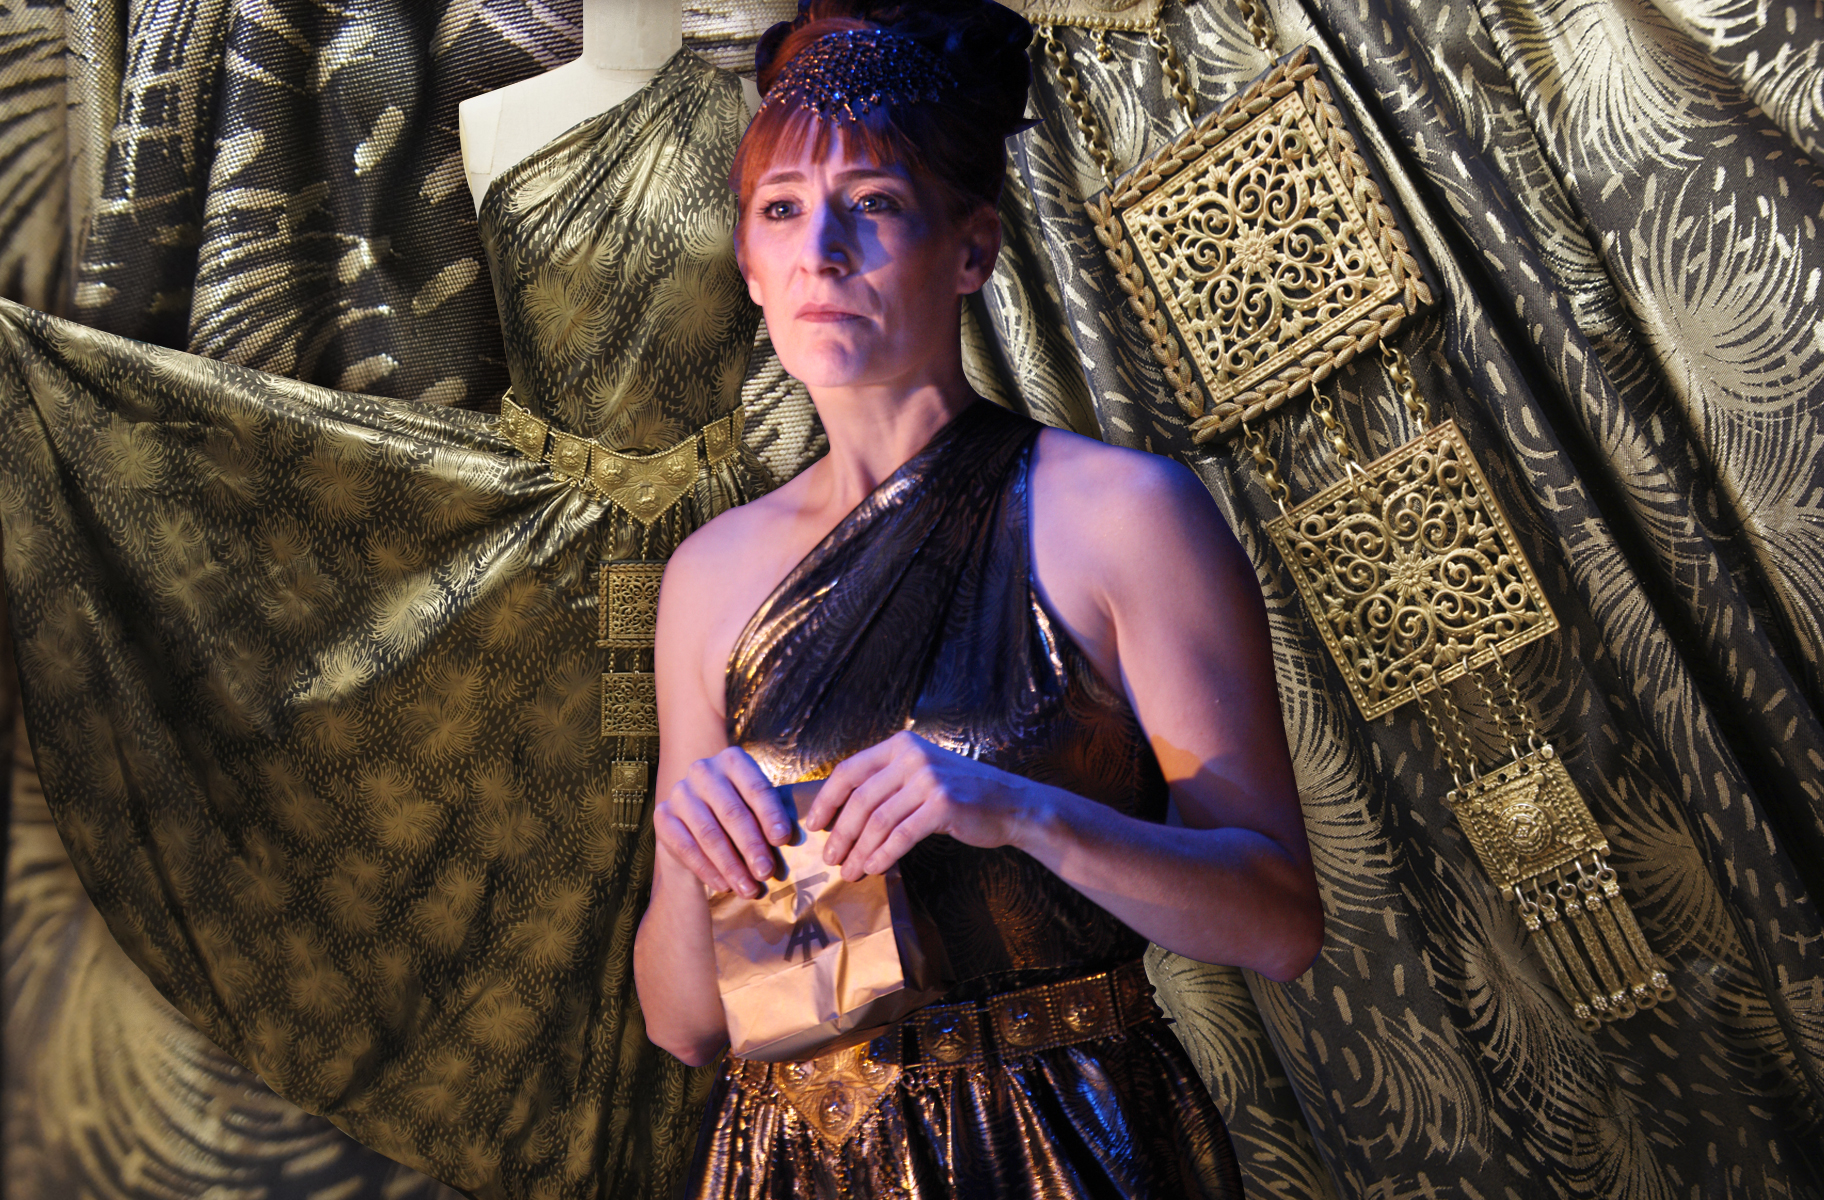 Actor wearing a gold dress and holding a small bag in front oher - behind is close up of the dress fabric and detailed metal belt